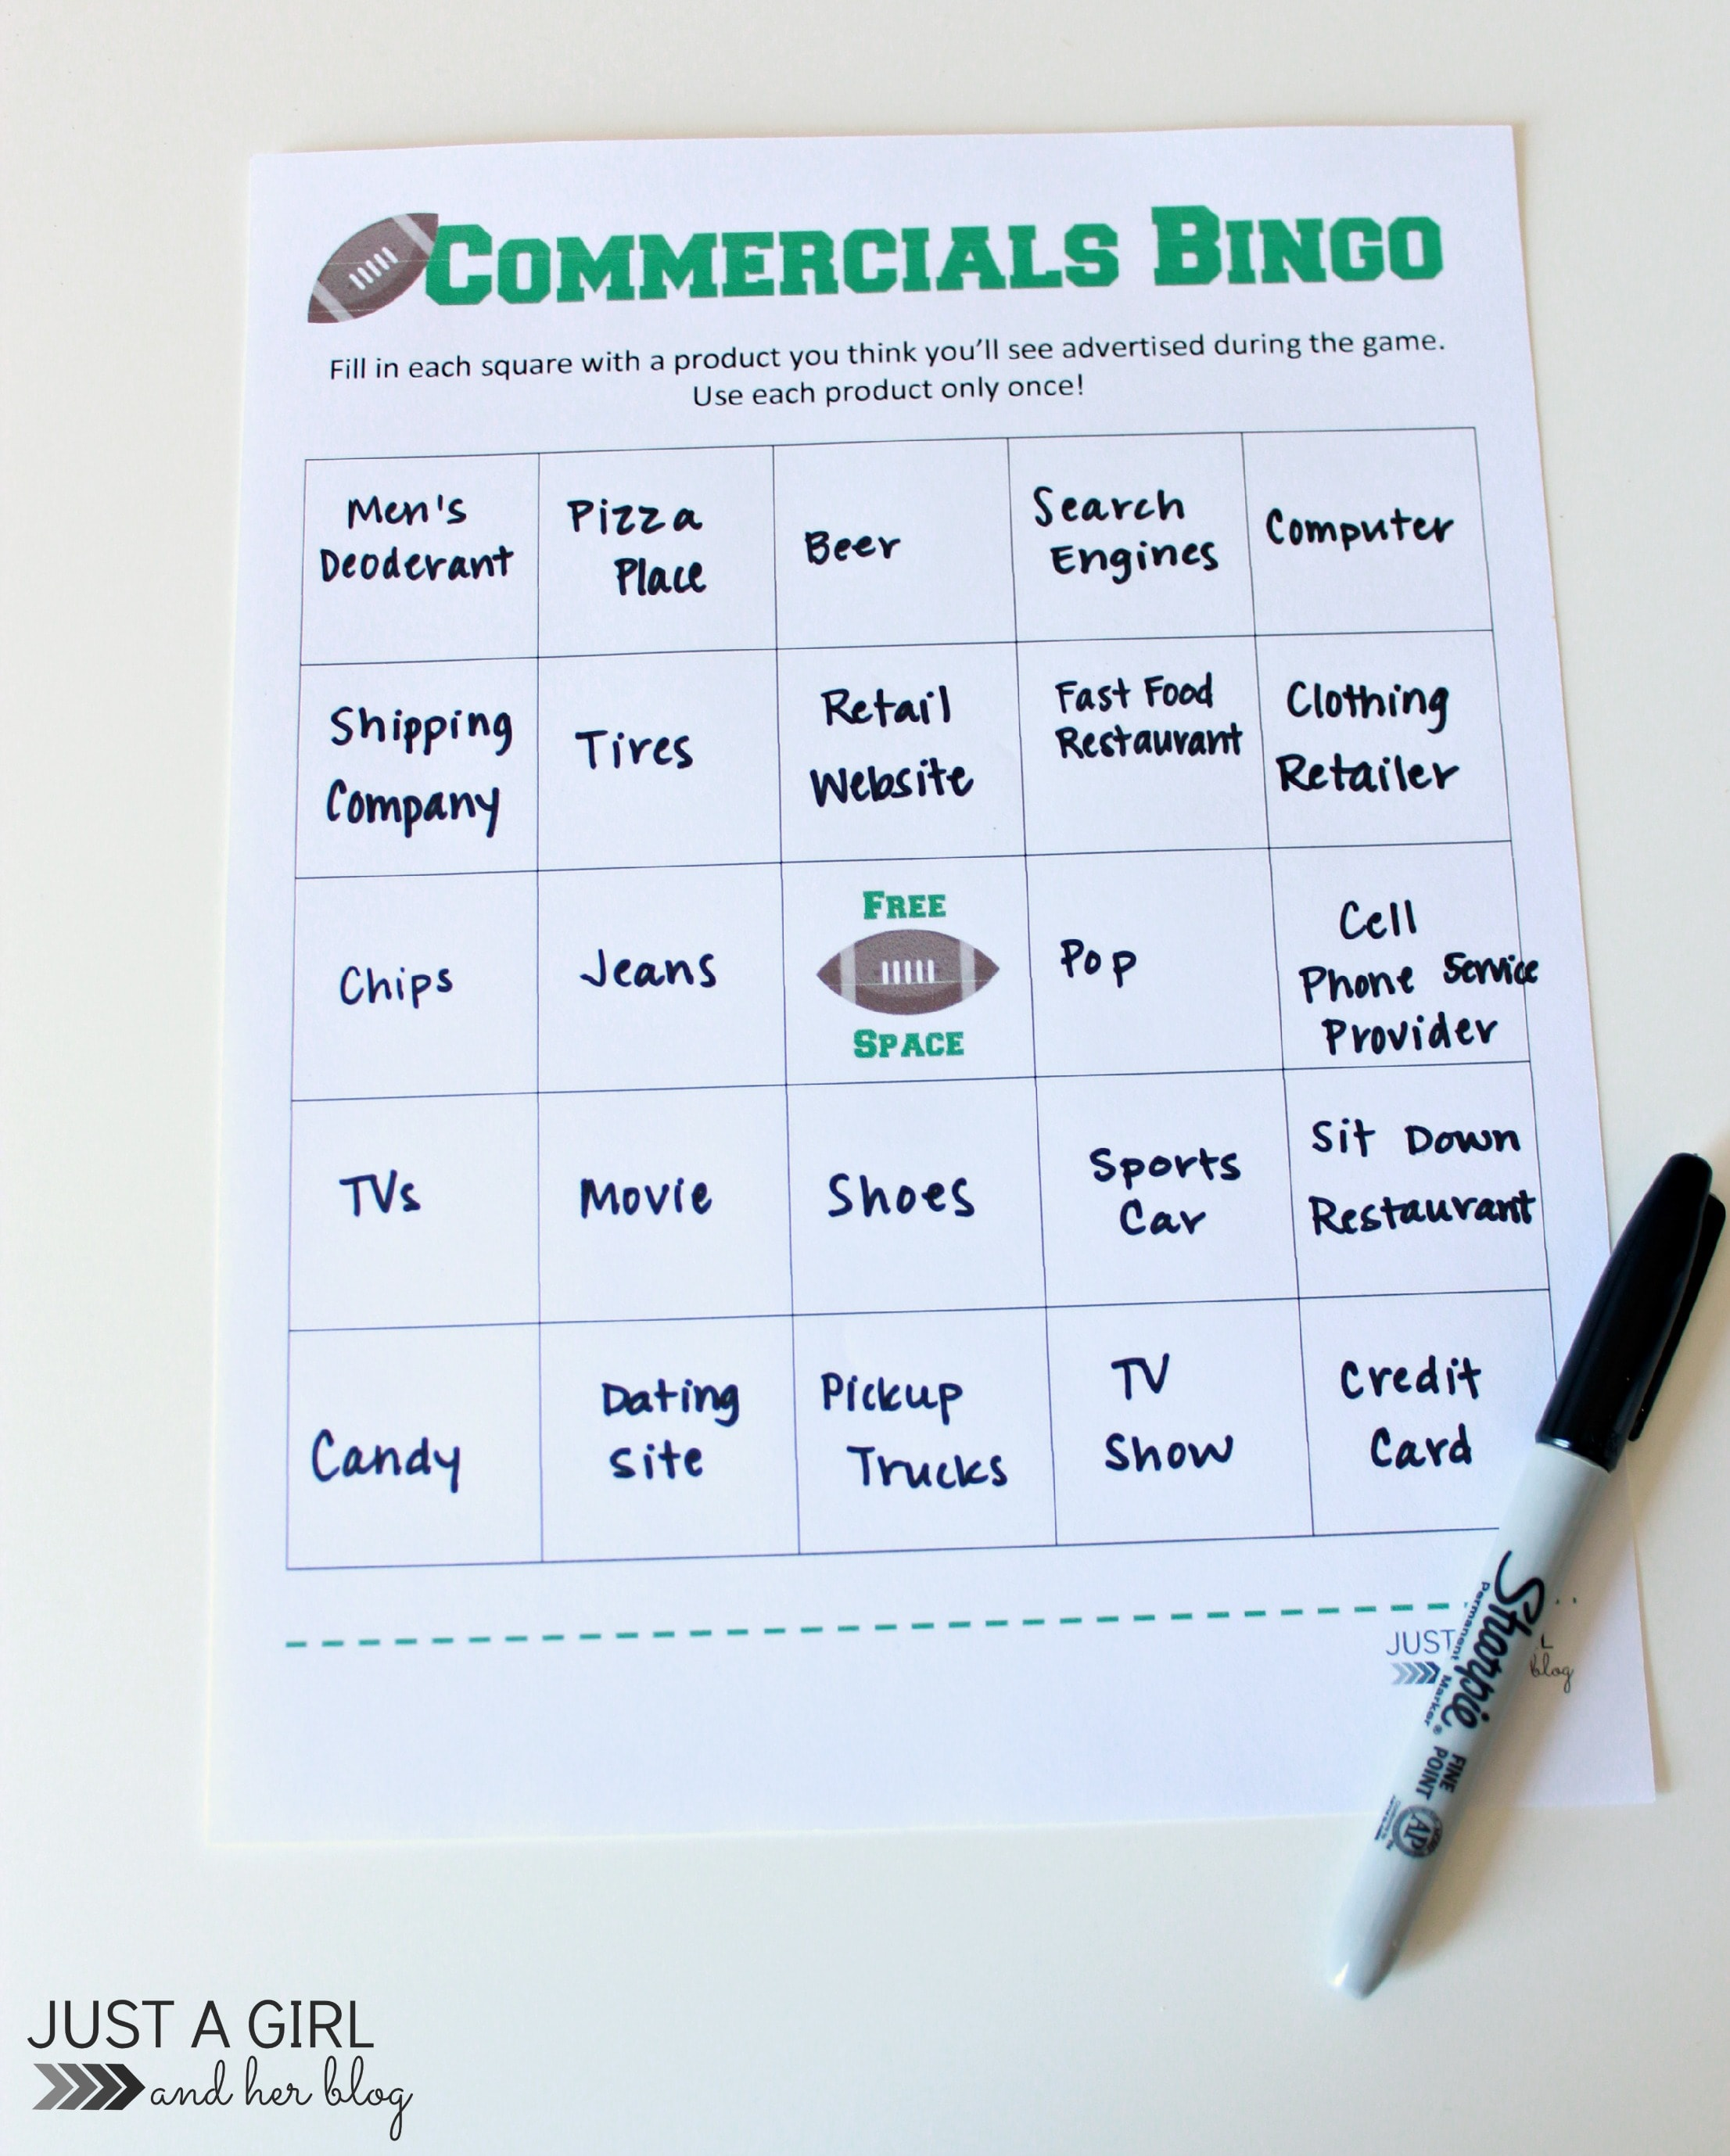 ... with a Bingo wins! Want to play? Download the free printable below